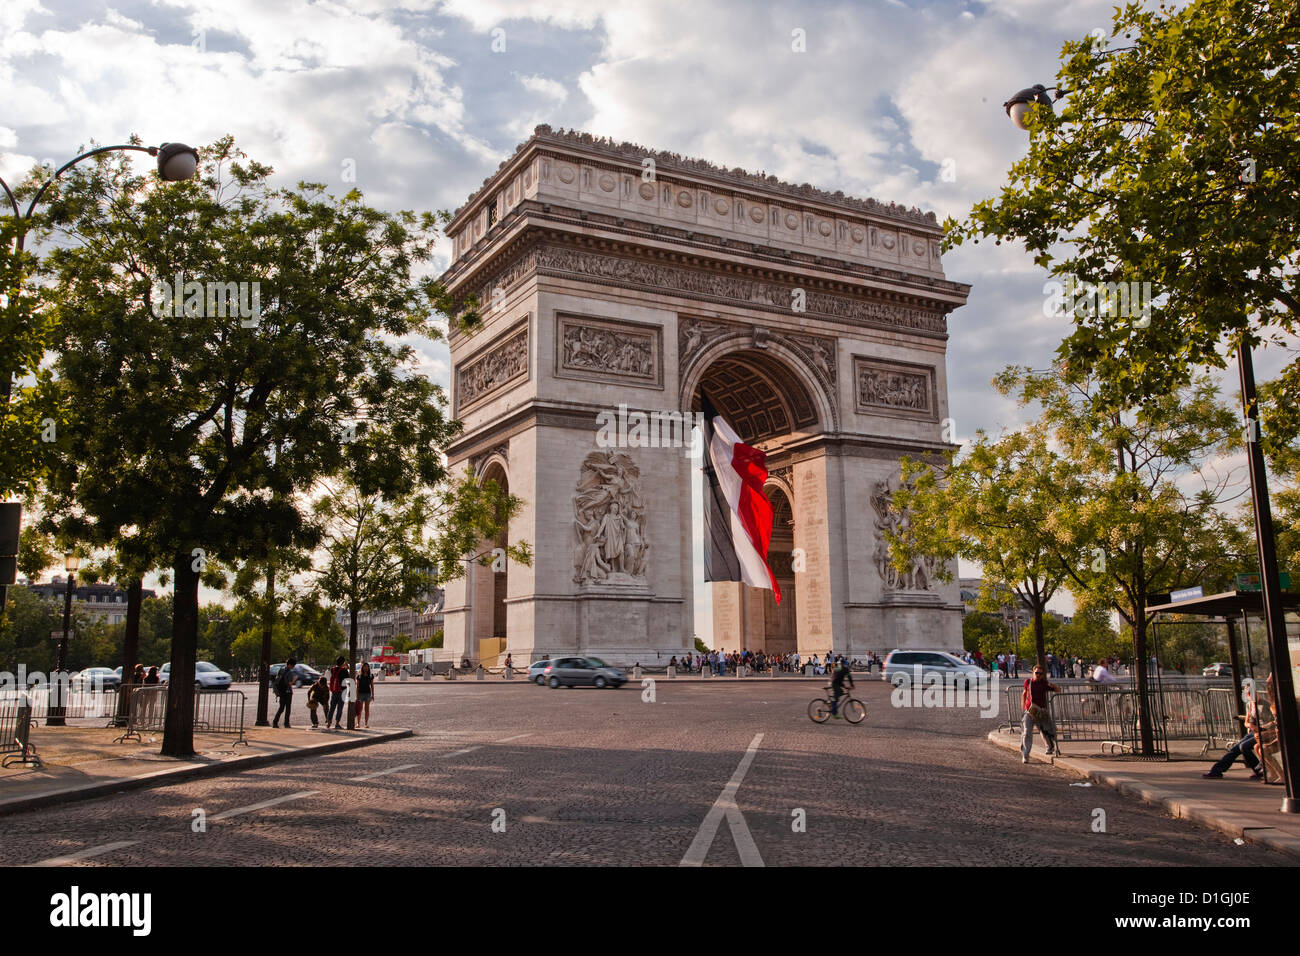 The Arc de Triomphe on the Champs Elysees in Paris, France, Europe - Stock Image